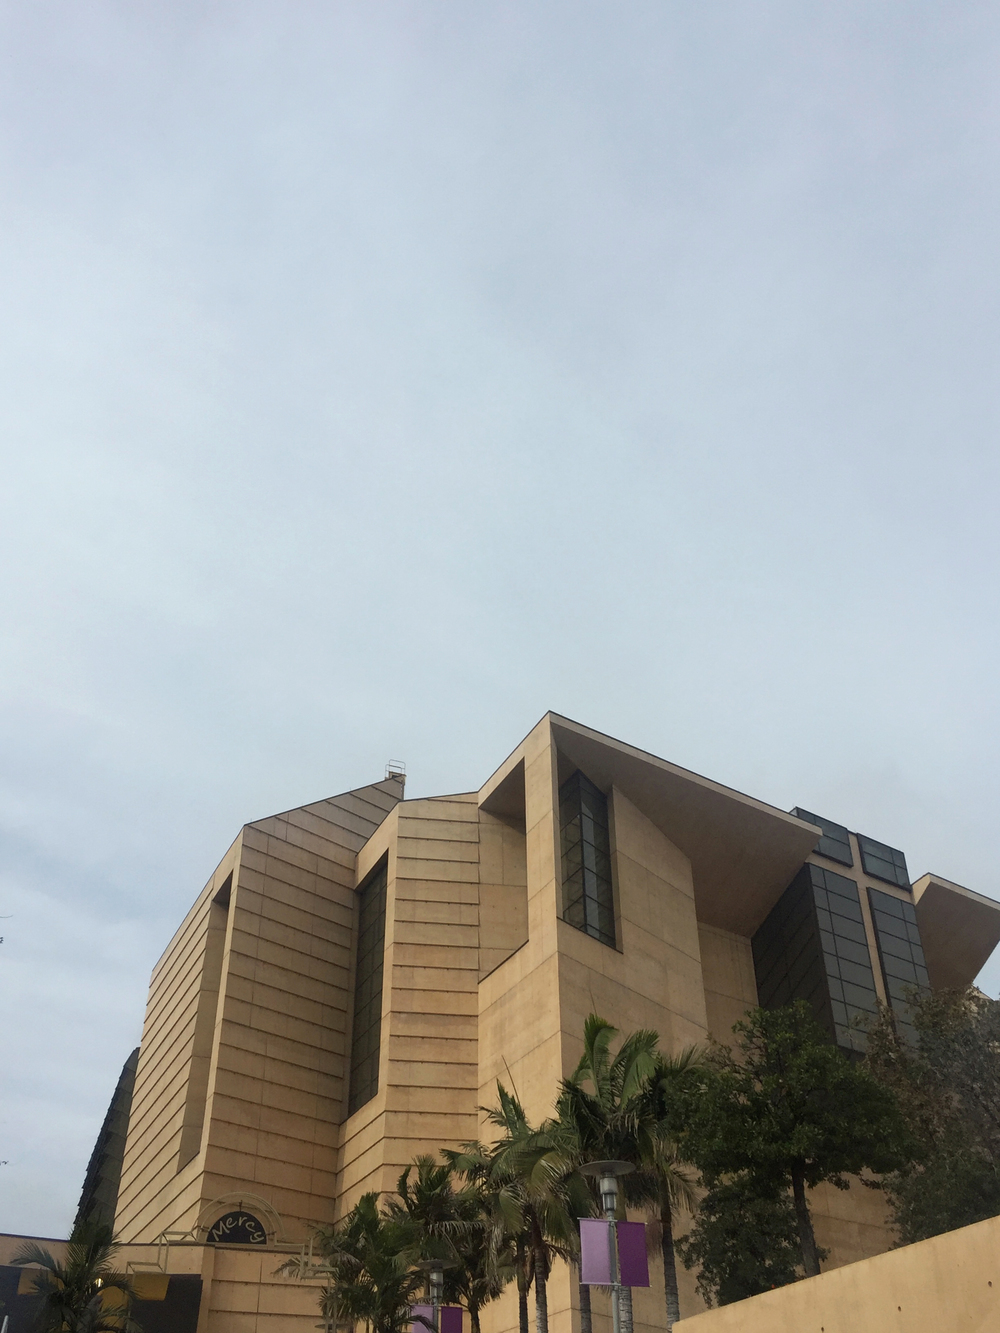 The Cathedral of our Lady of the Angels tour